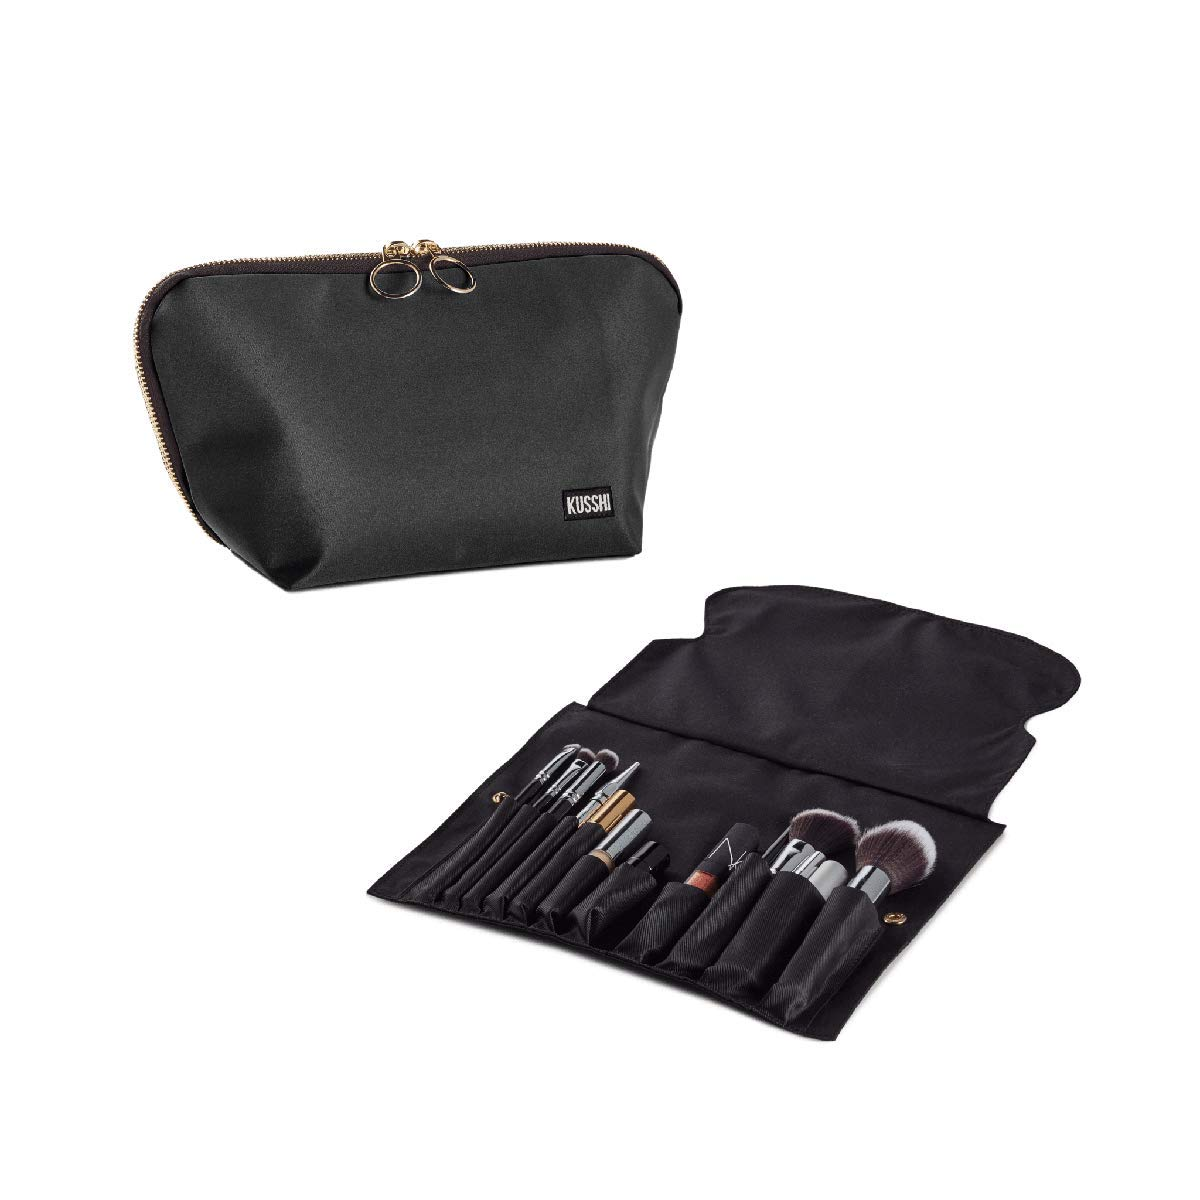 KUSSHI Washable Makeup & Cosmetic Travel Bag with Brush Organizer